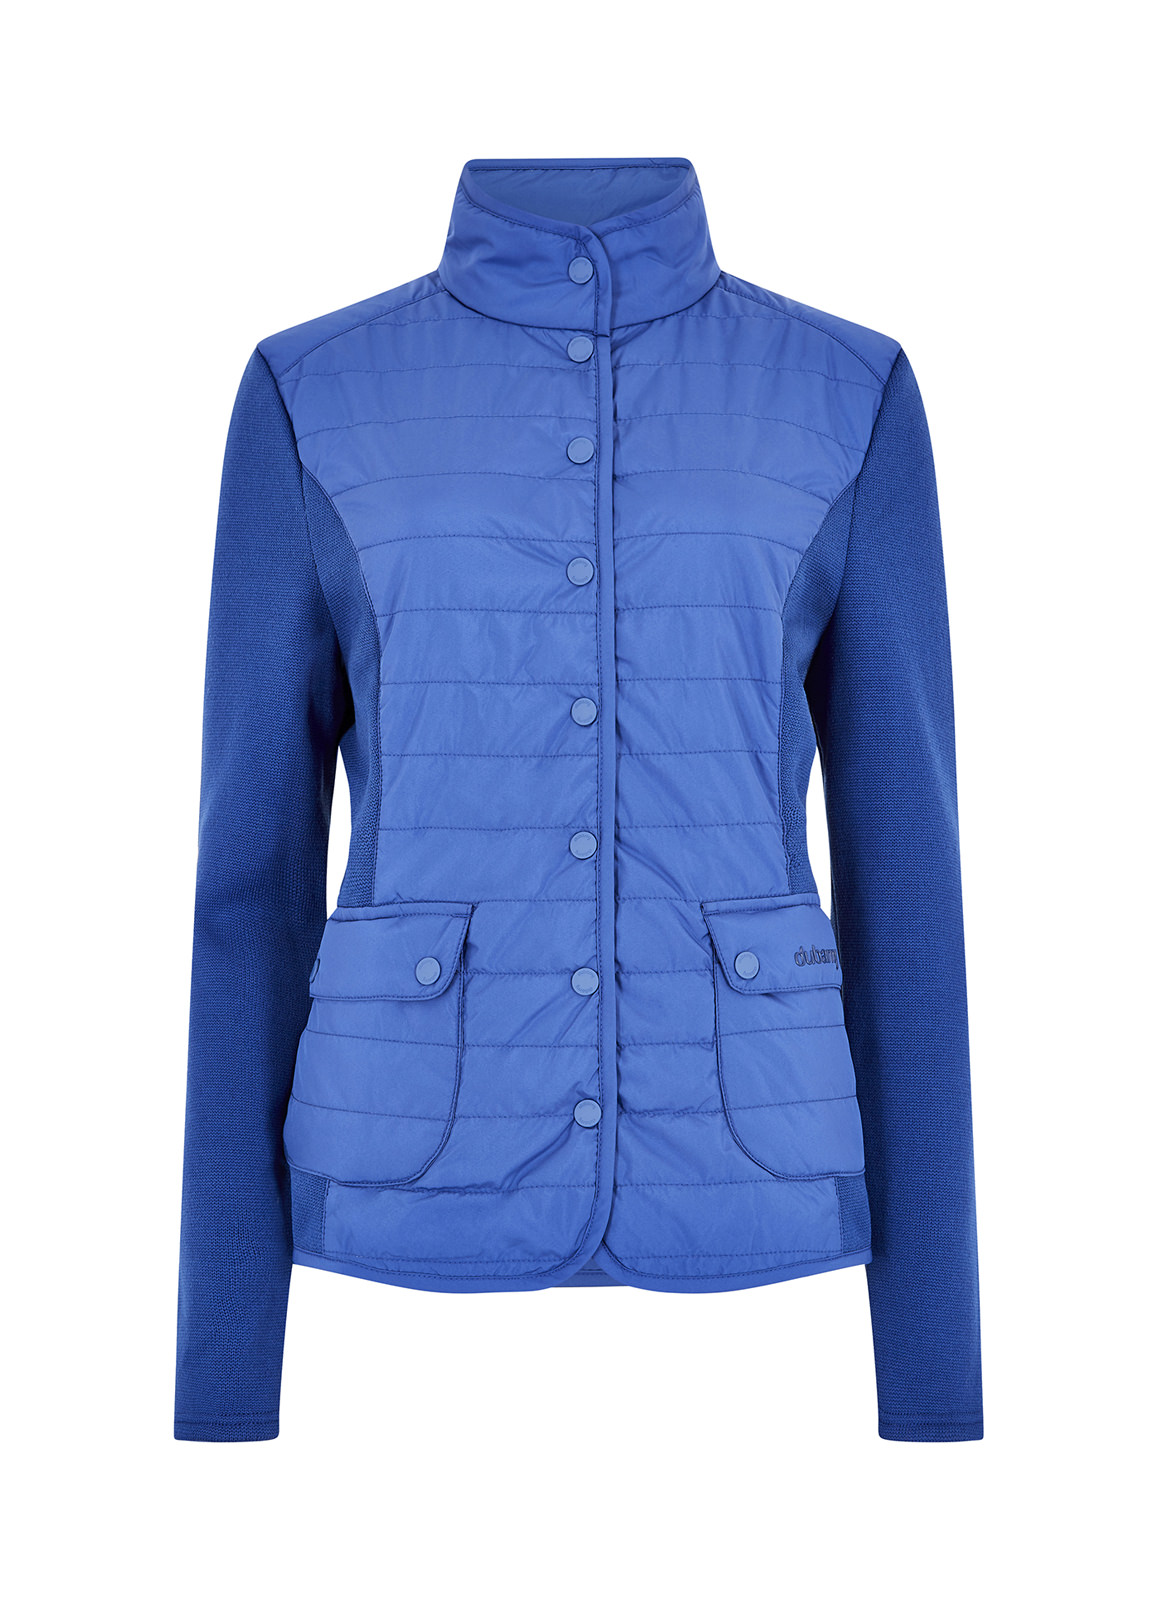 Dubarry_ Terryglass jacket - Royal Blue_Image_2